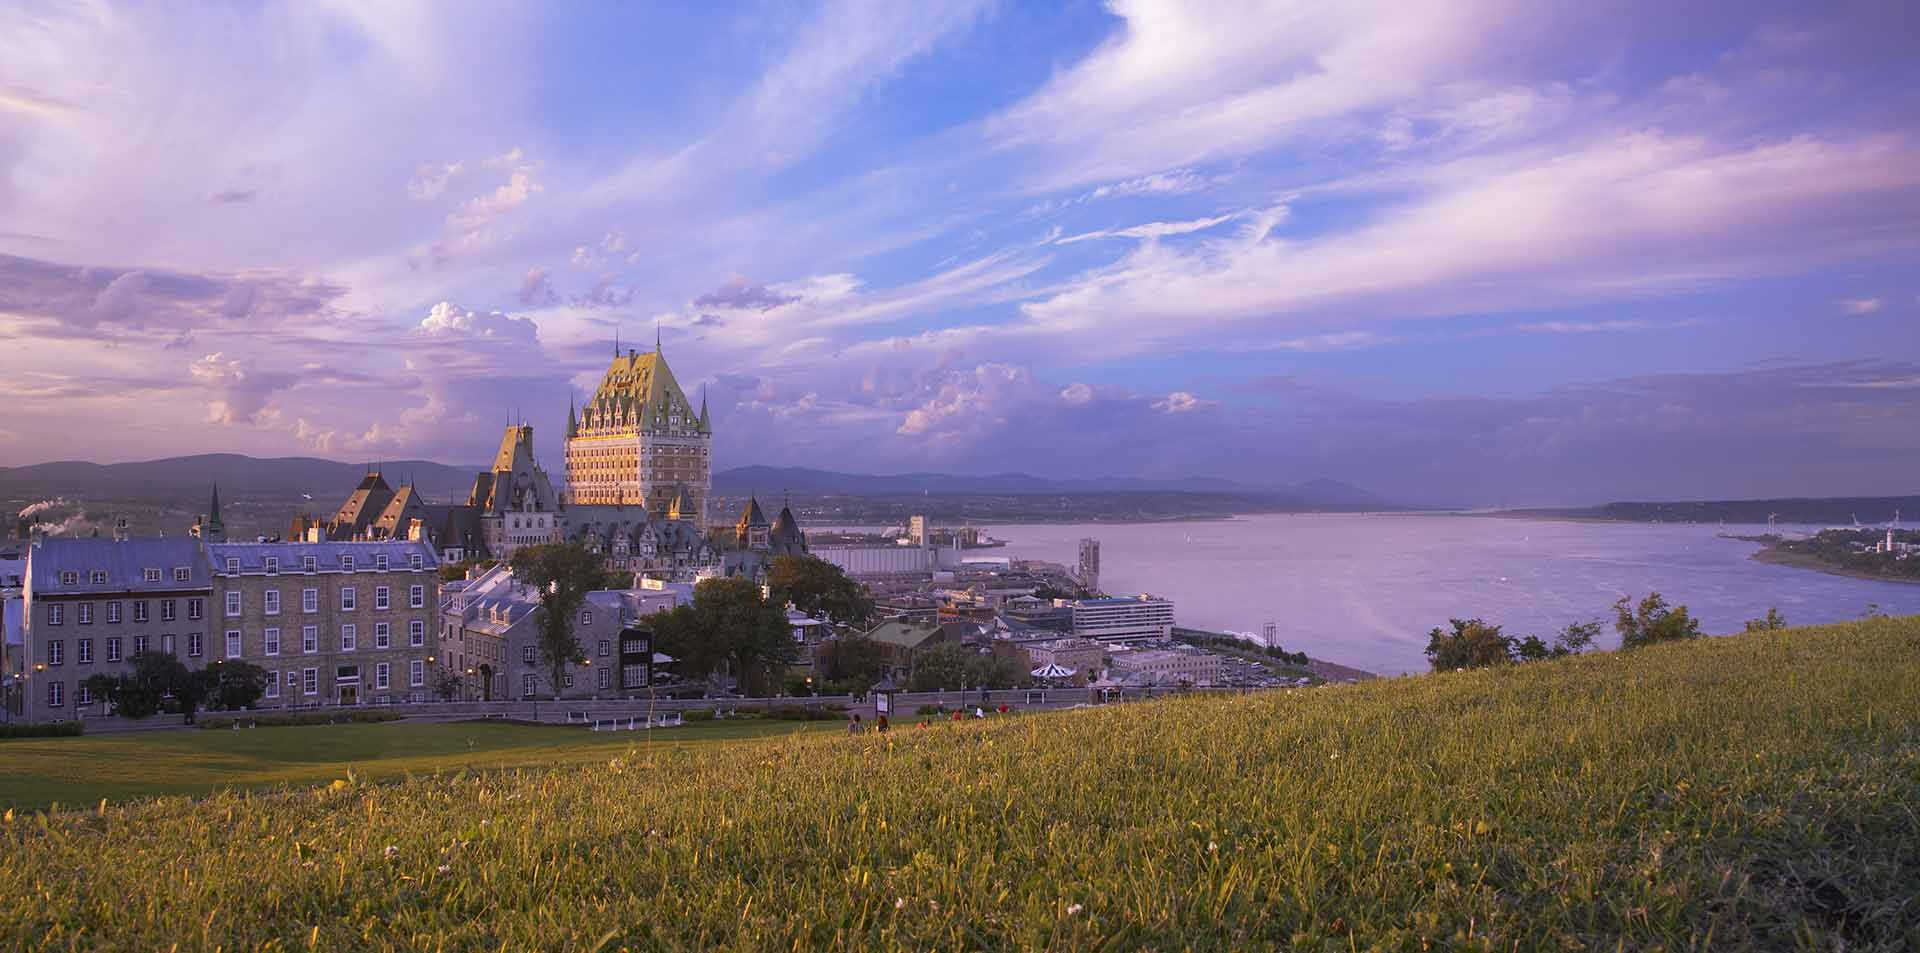 North America Canada Quebec Charlevoix Fairmont Le Chateau Frontenac hotel sunset skyline - luxury vacation destinations